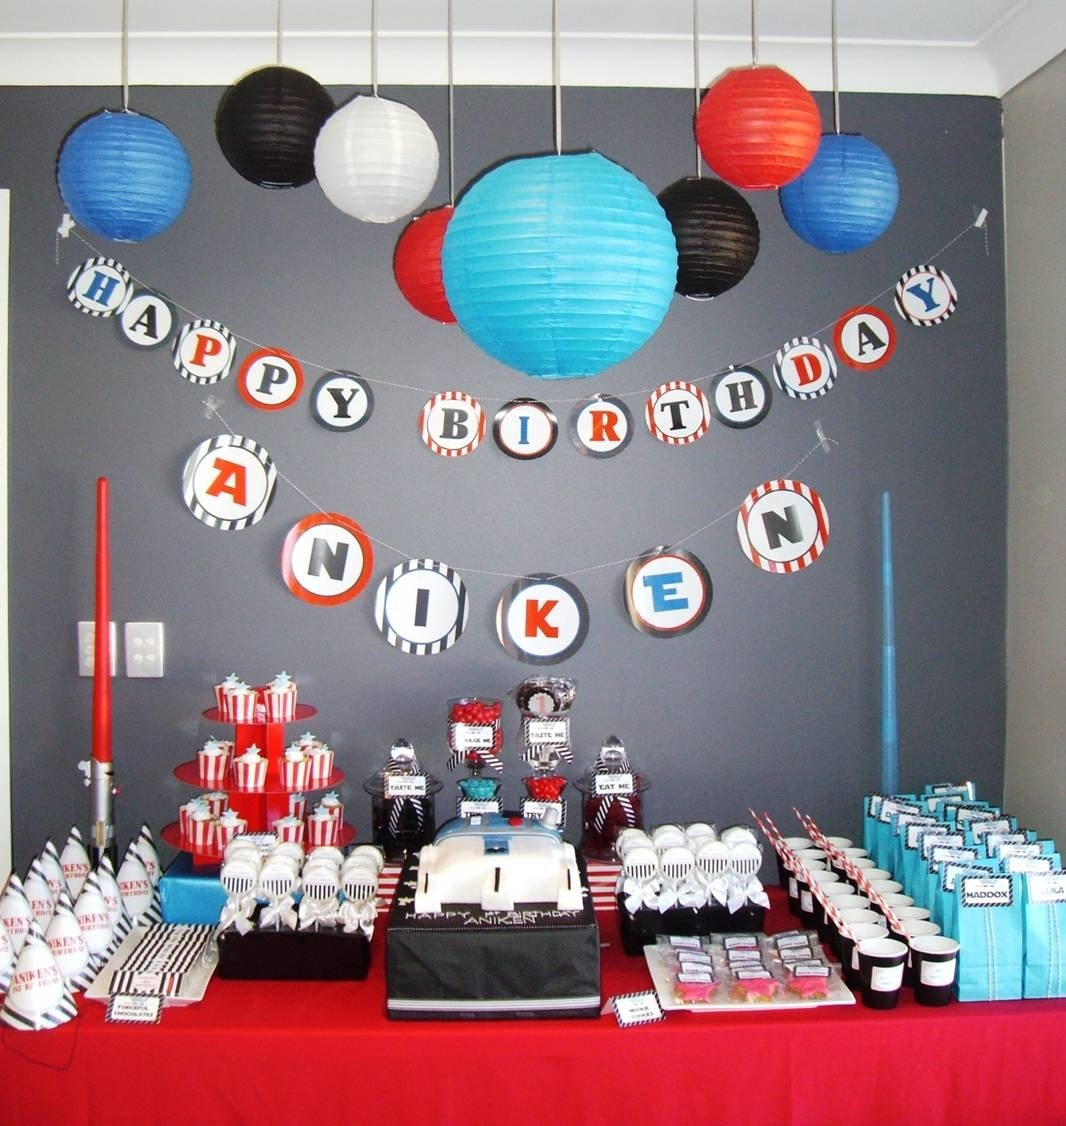 10 Wonderful 25 Year Old Birthday Party Ideas Unique For Boys Top